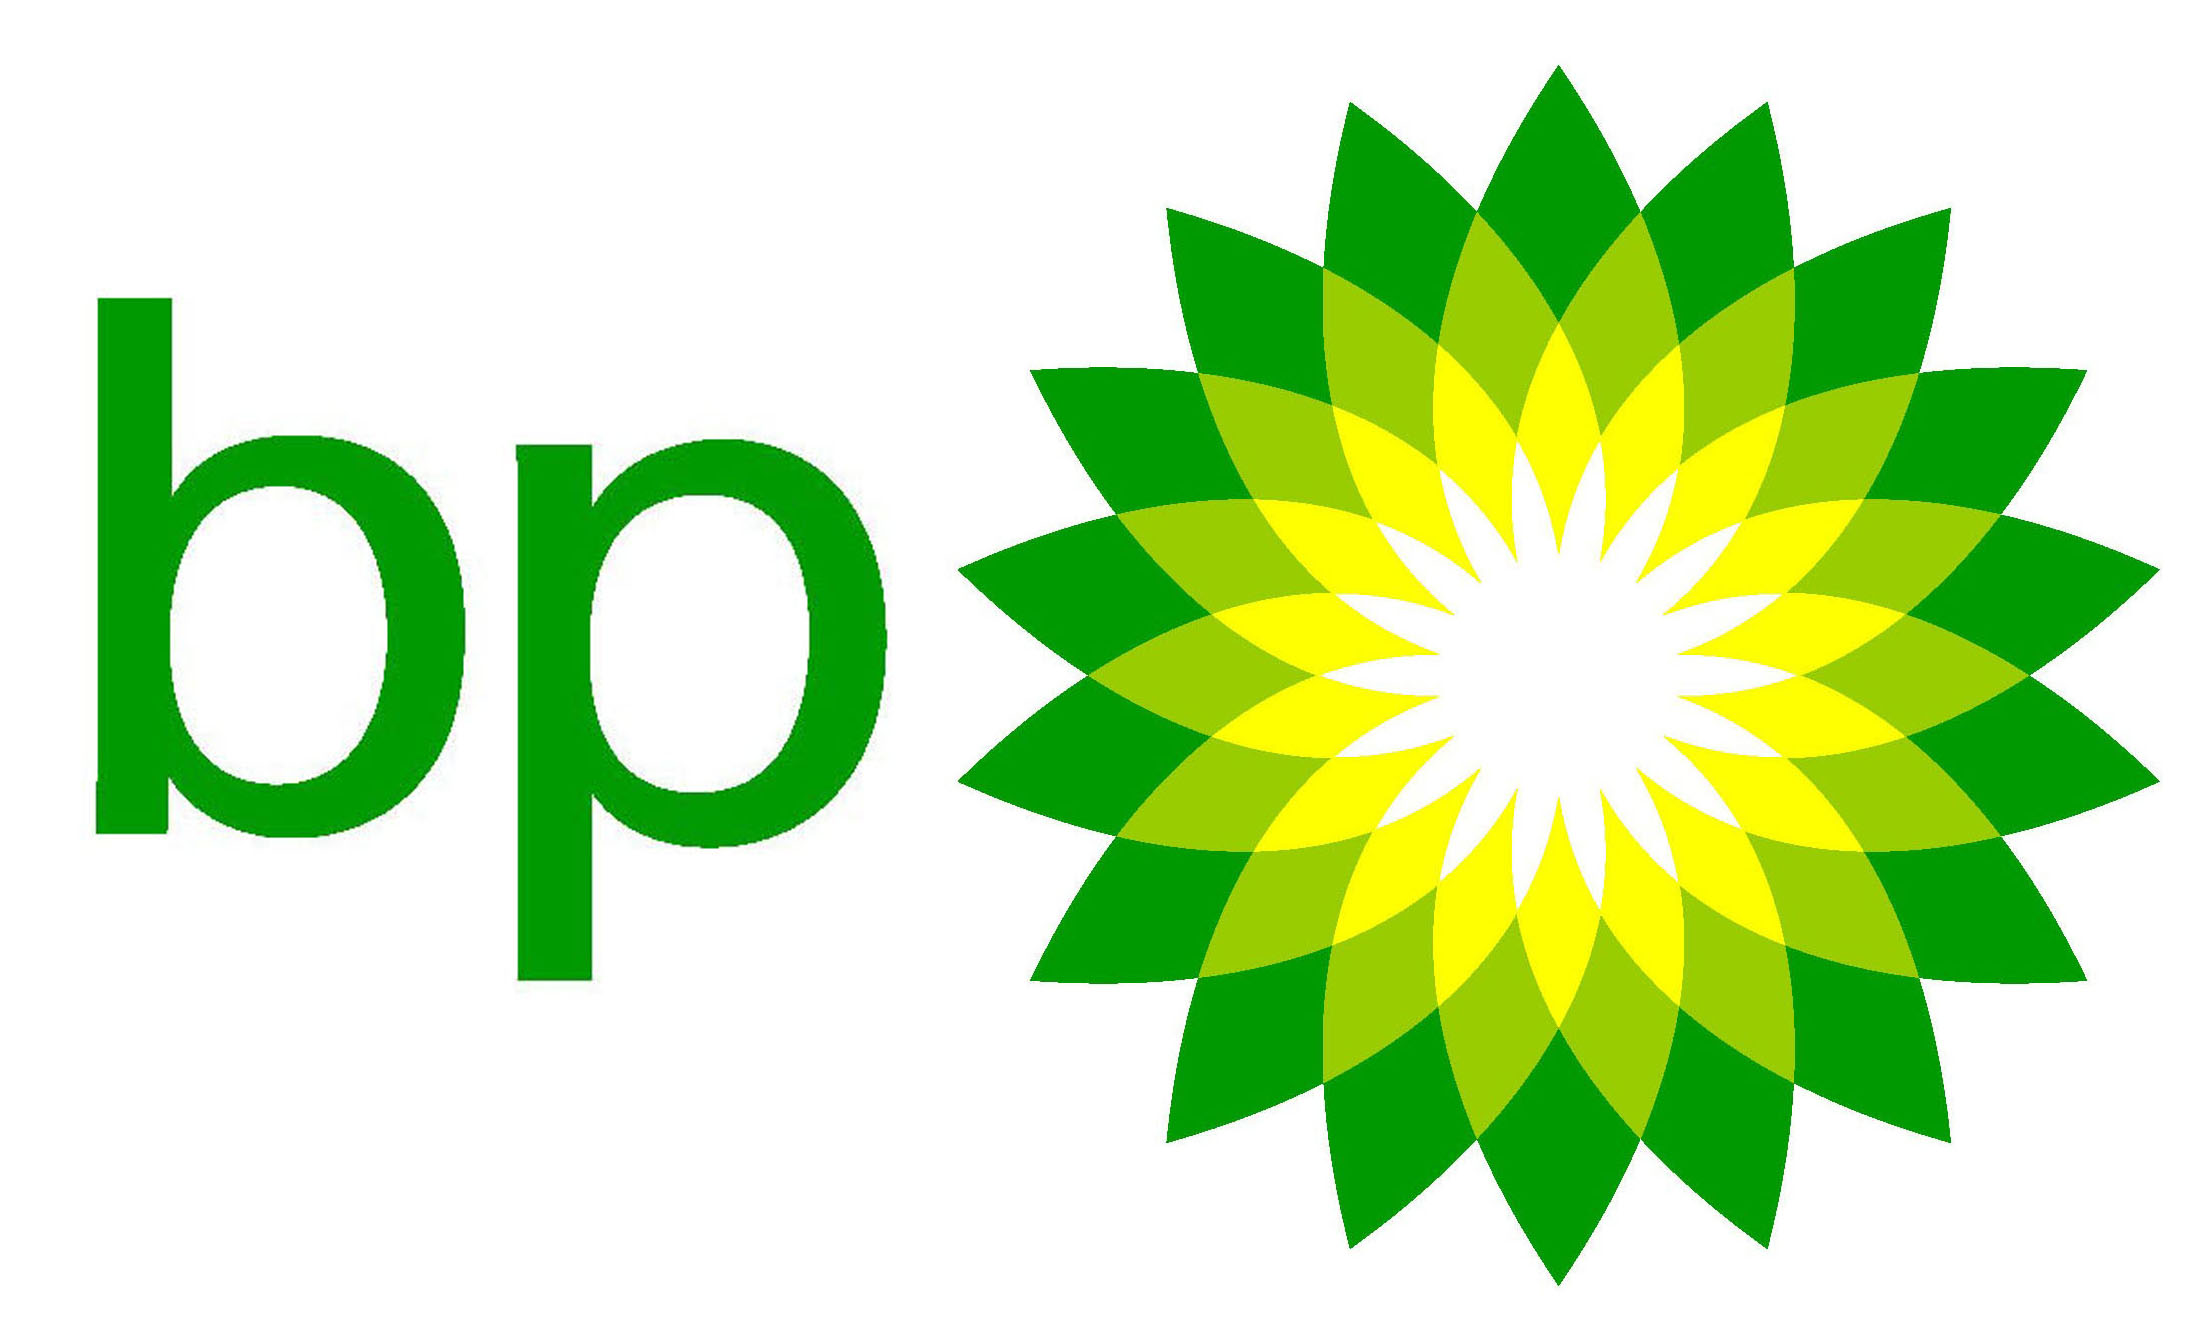 Bp Extends Business Process Service Contract With Accenture   Computer Business Review - British Petroleum, Transparent background PNG HD thumbnail